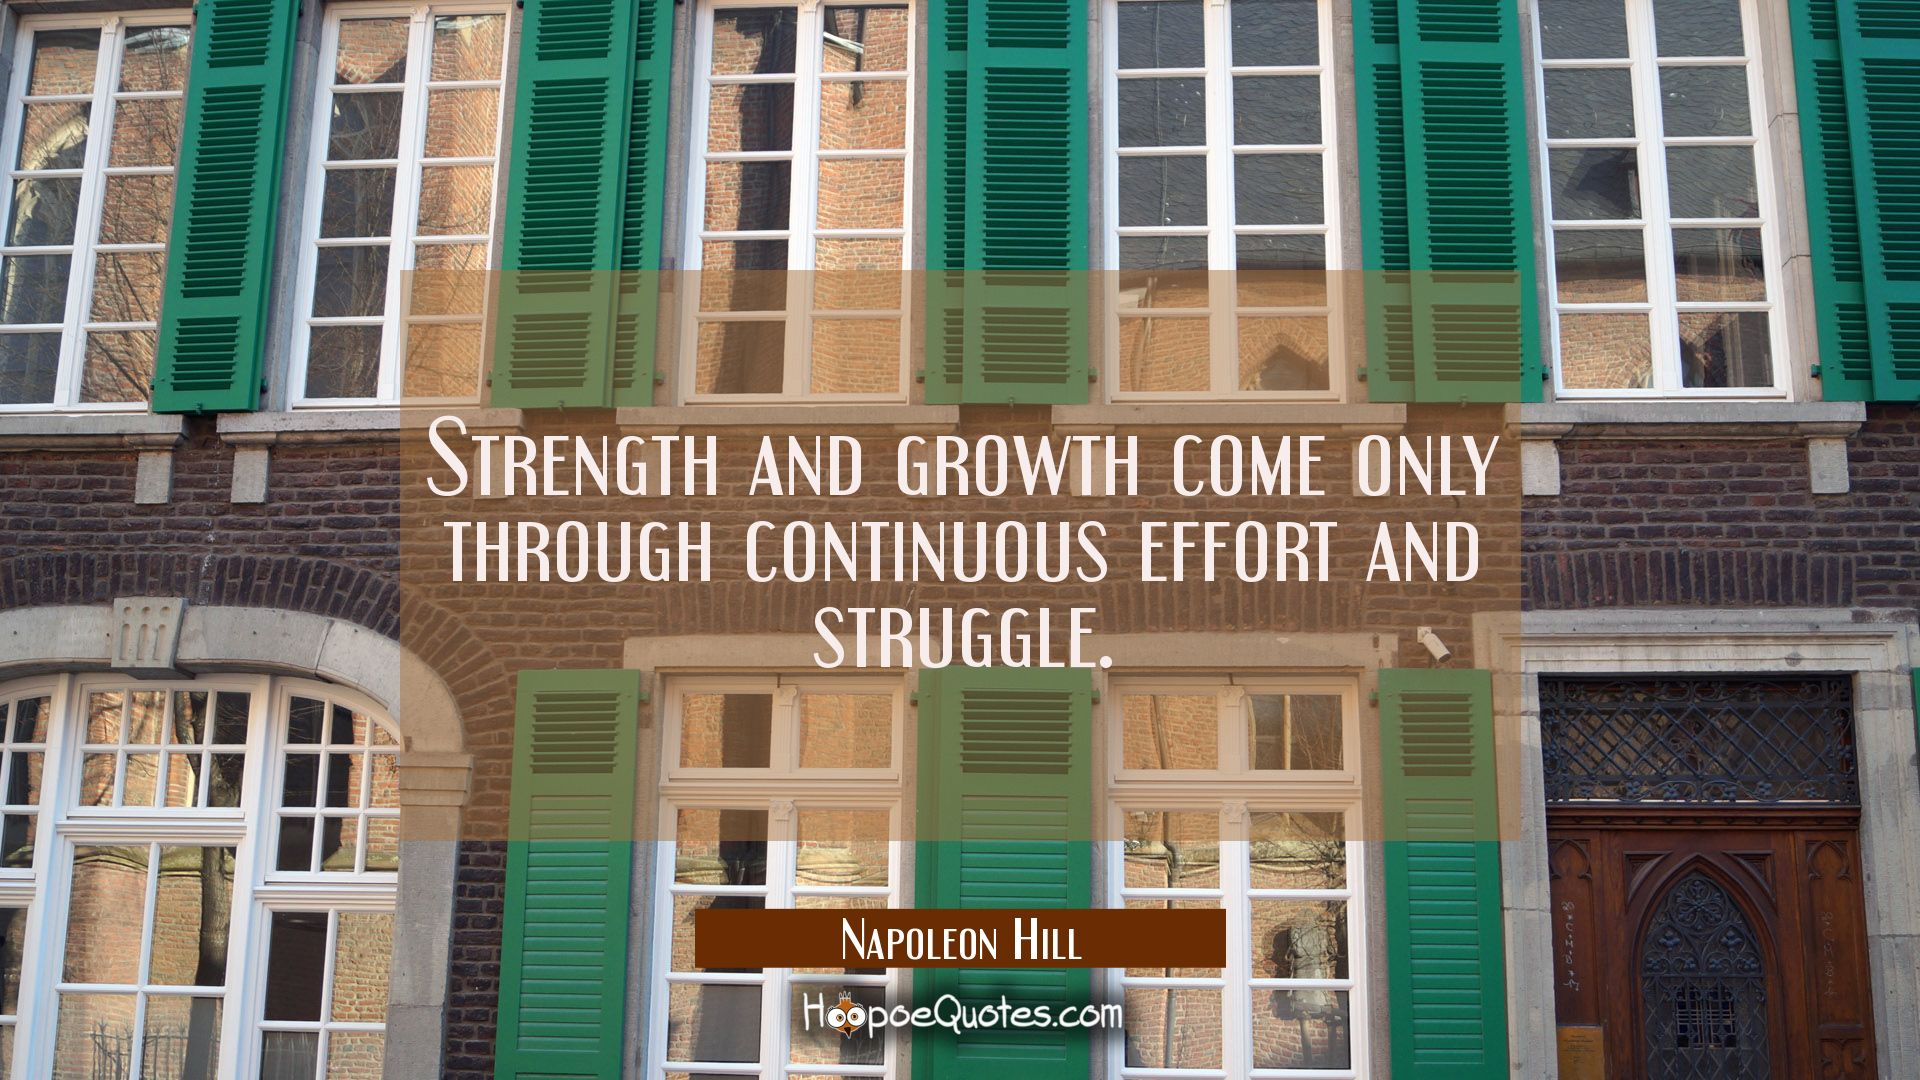 Outwitting The Devil Quotes Strength And Growth Come Only Through Continuous Effort And